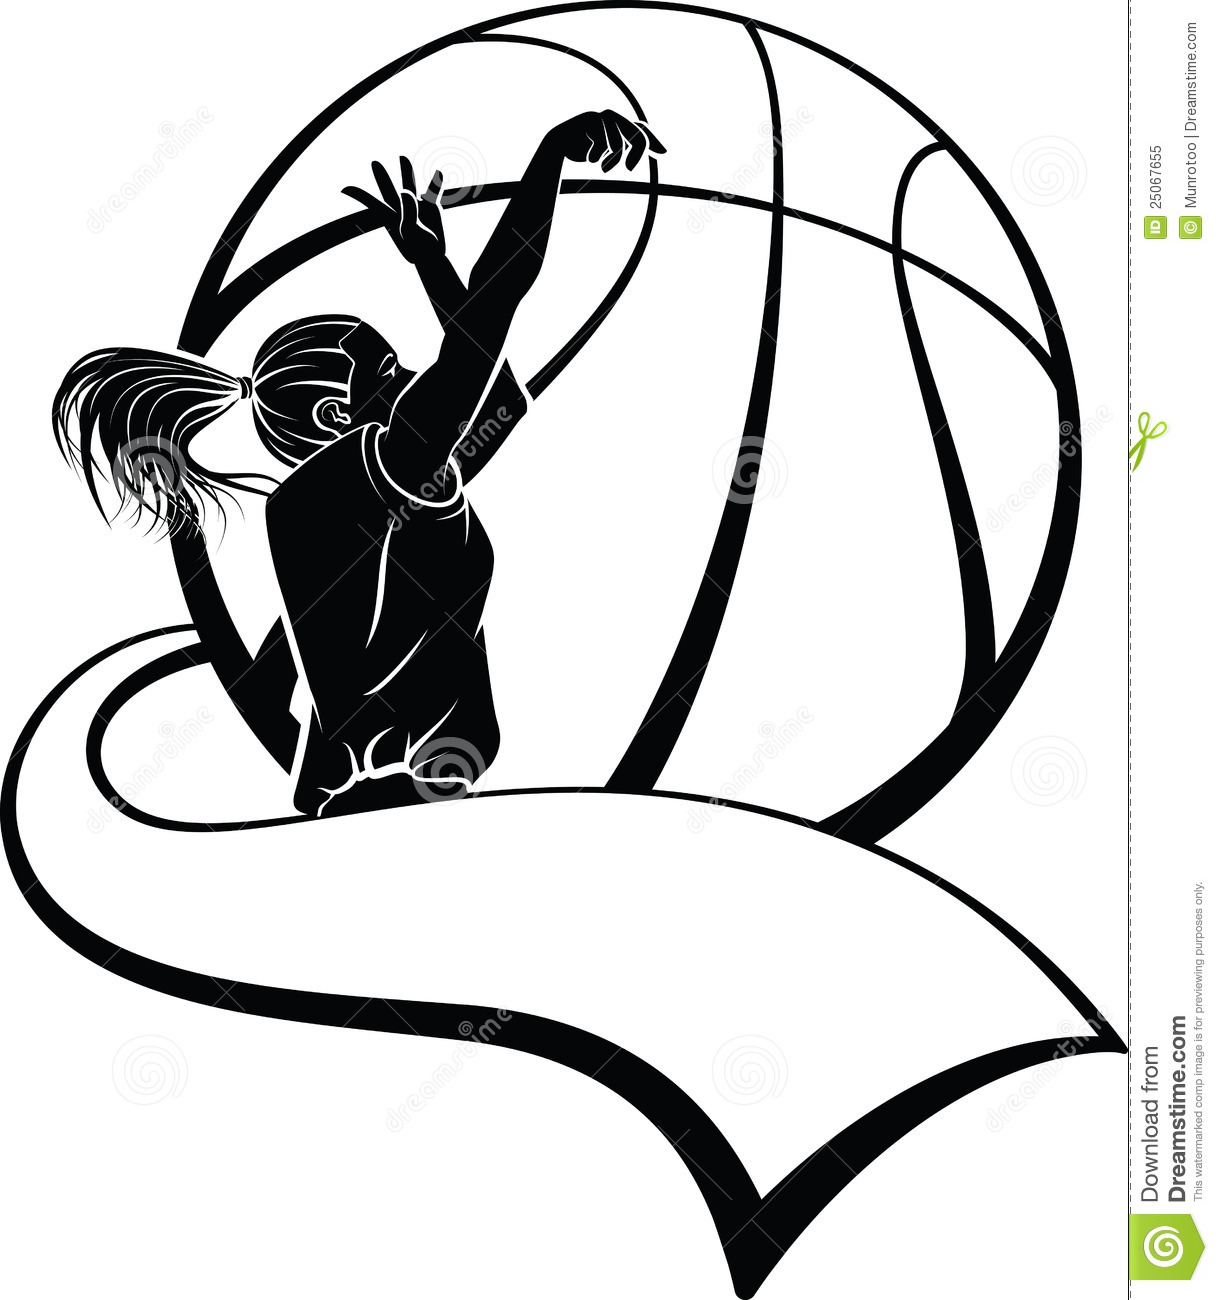 Unknown clipart female patient Clipart Basketball Basketball Girls Design